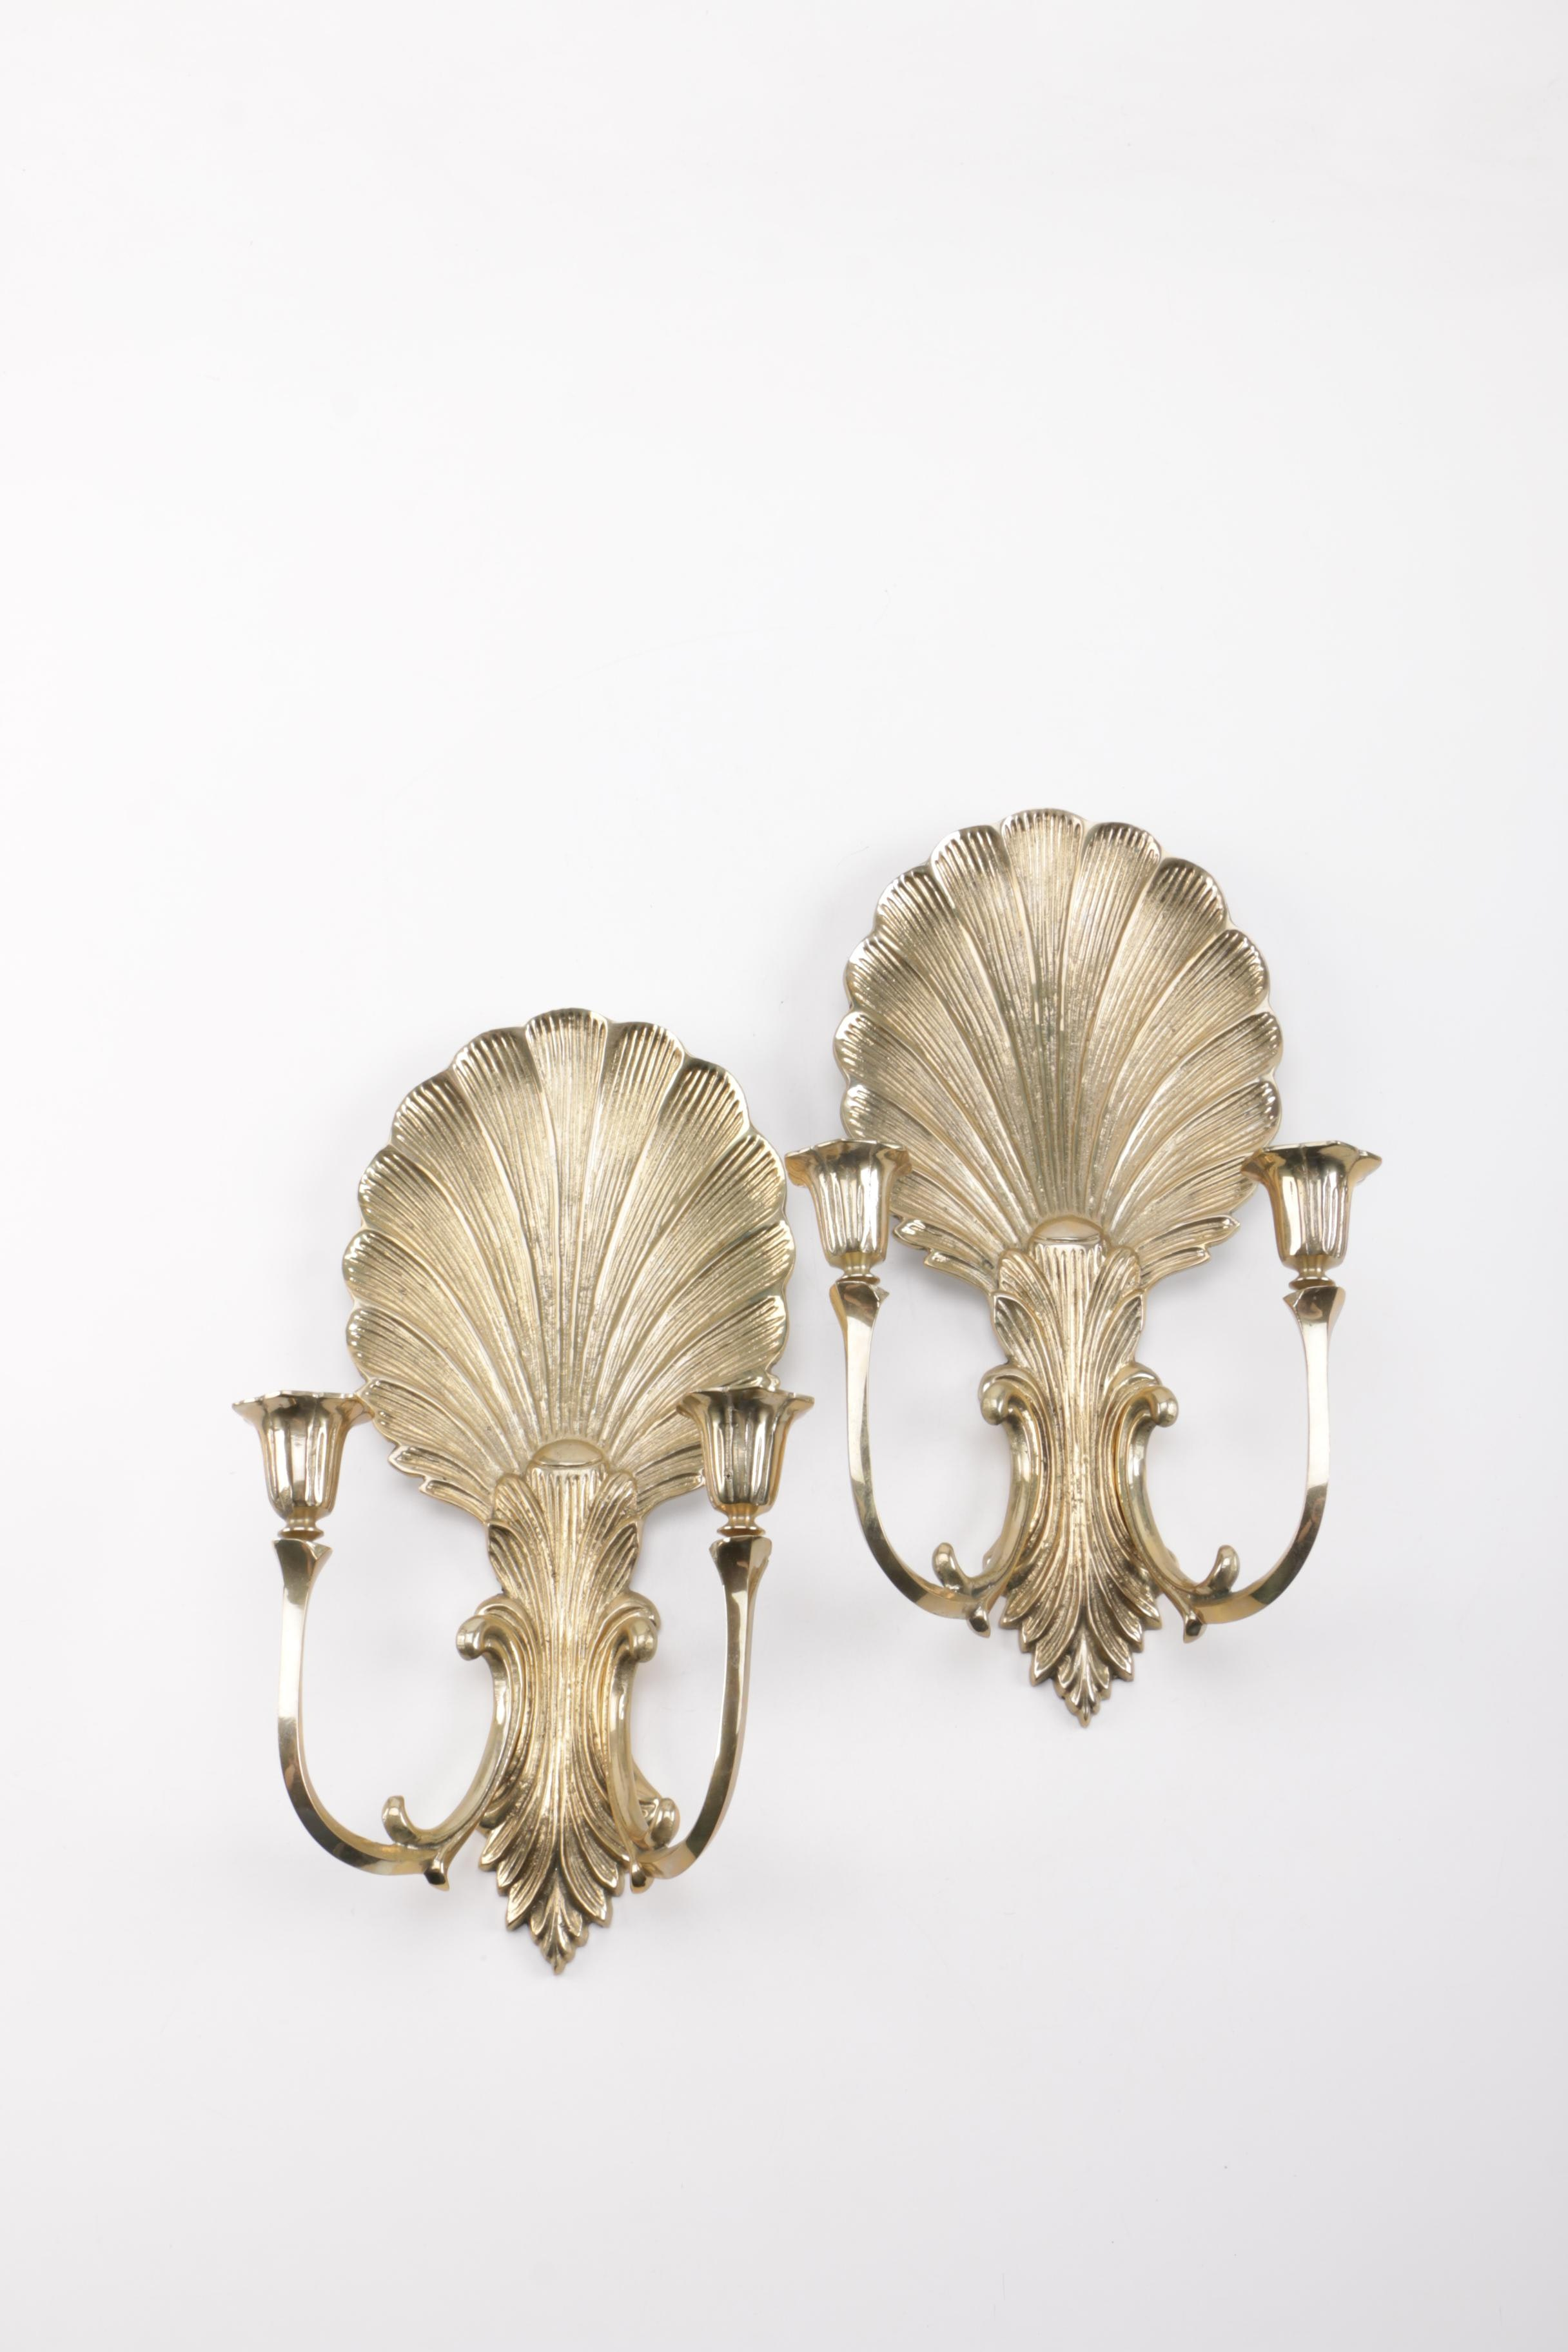 Two Brass Candle Holder Sconces